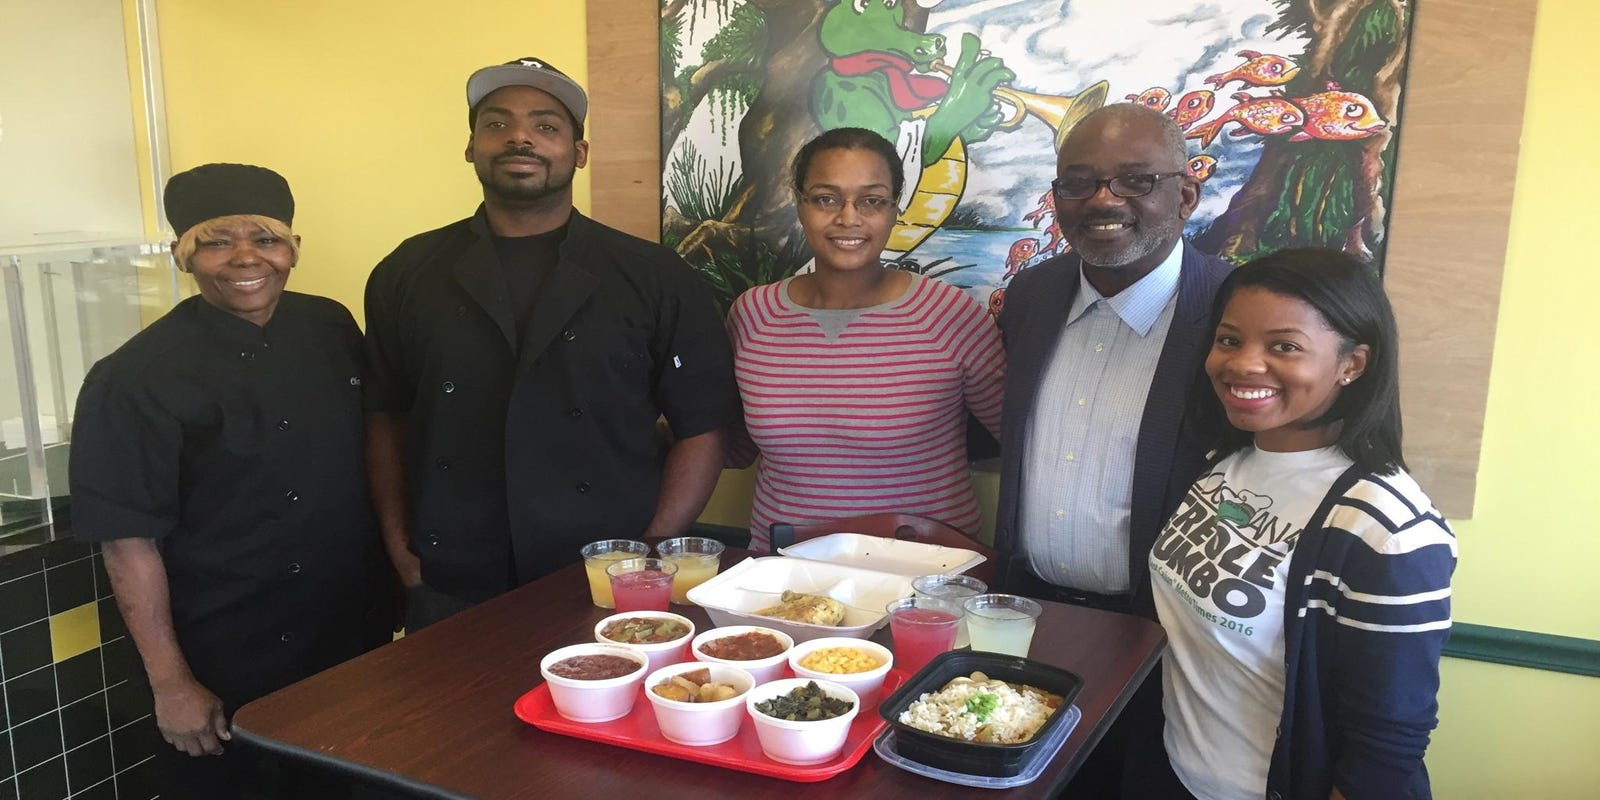 Detroit Creole spot expands to second location